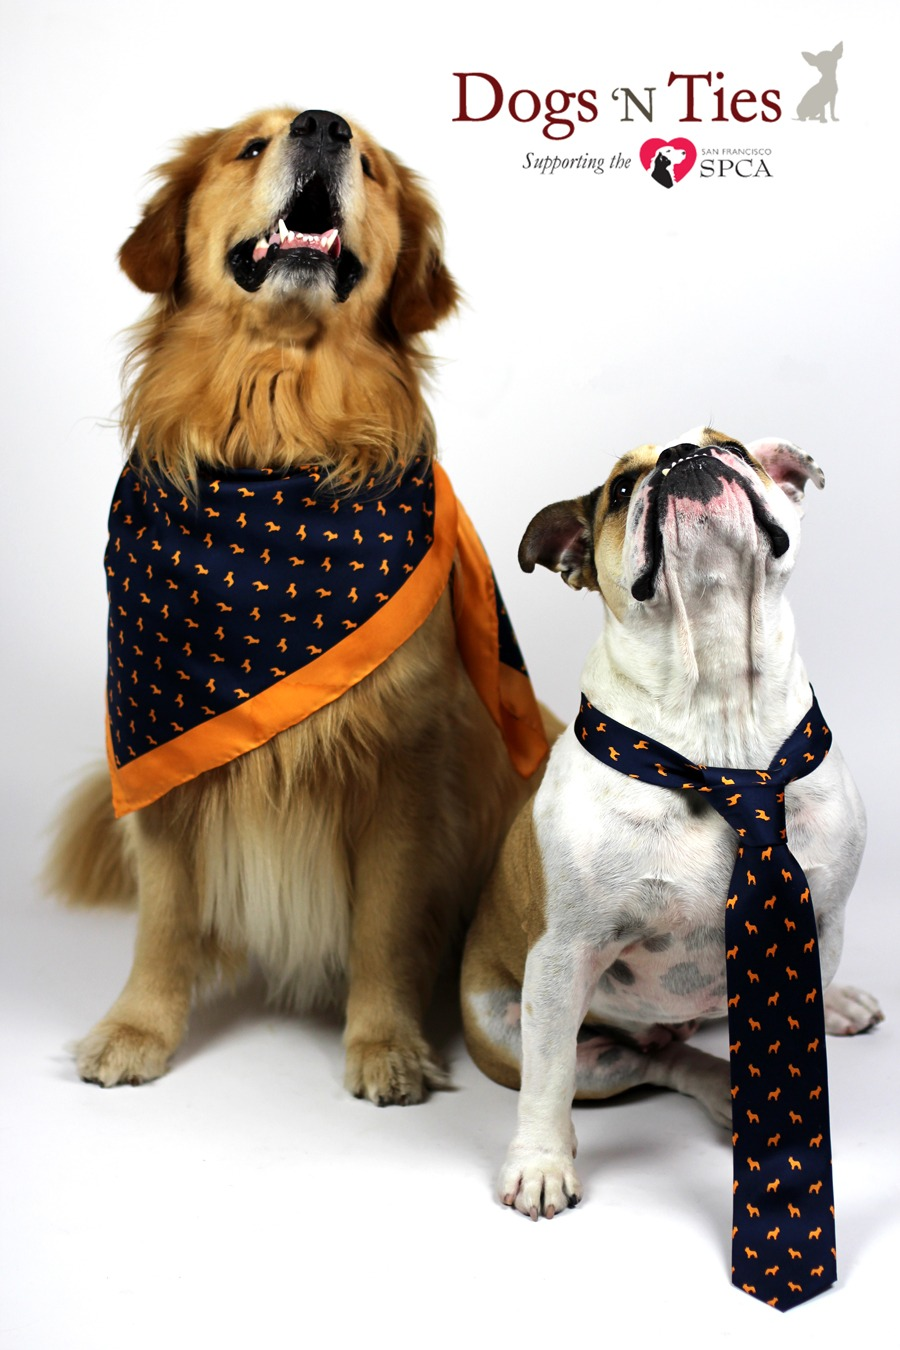 bows-n-ties :     DOGS-N-TIES: A collection of scarves and silk ties that save the lives of rescue animals. Vote for your favorite pattern + Win.   CLICK HERE   for more info on this fundraiser for the SF SPCA